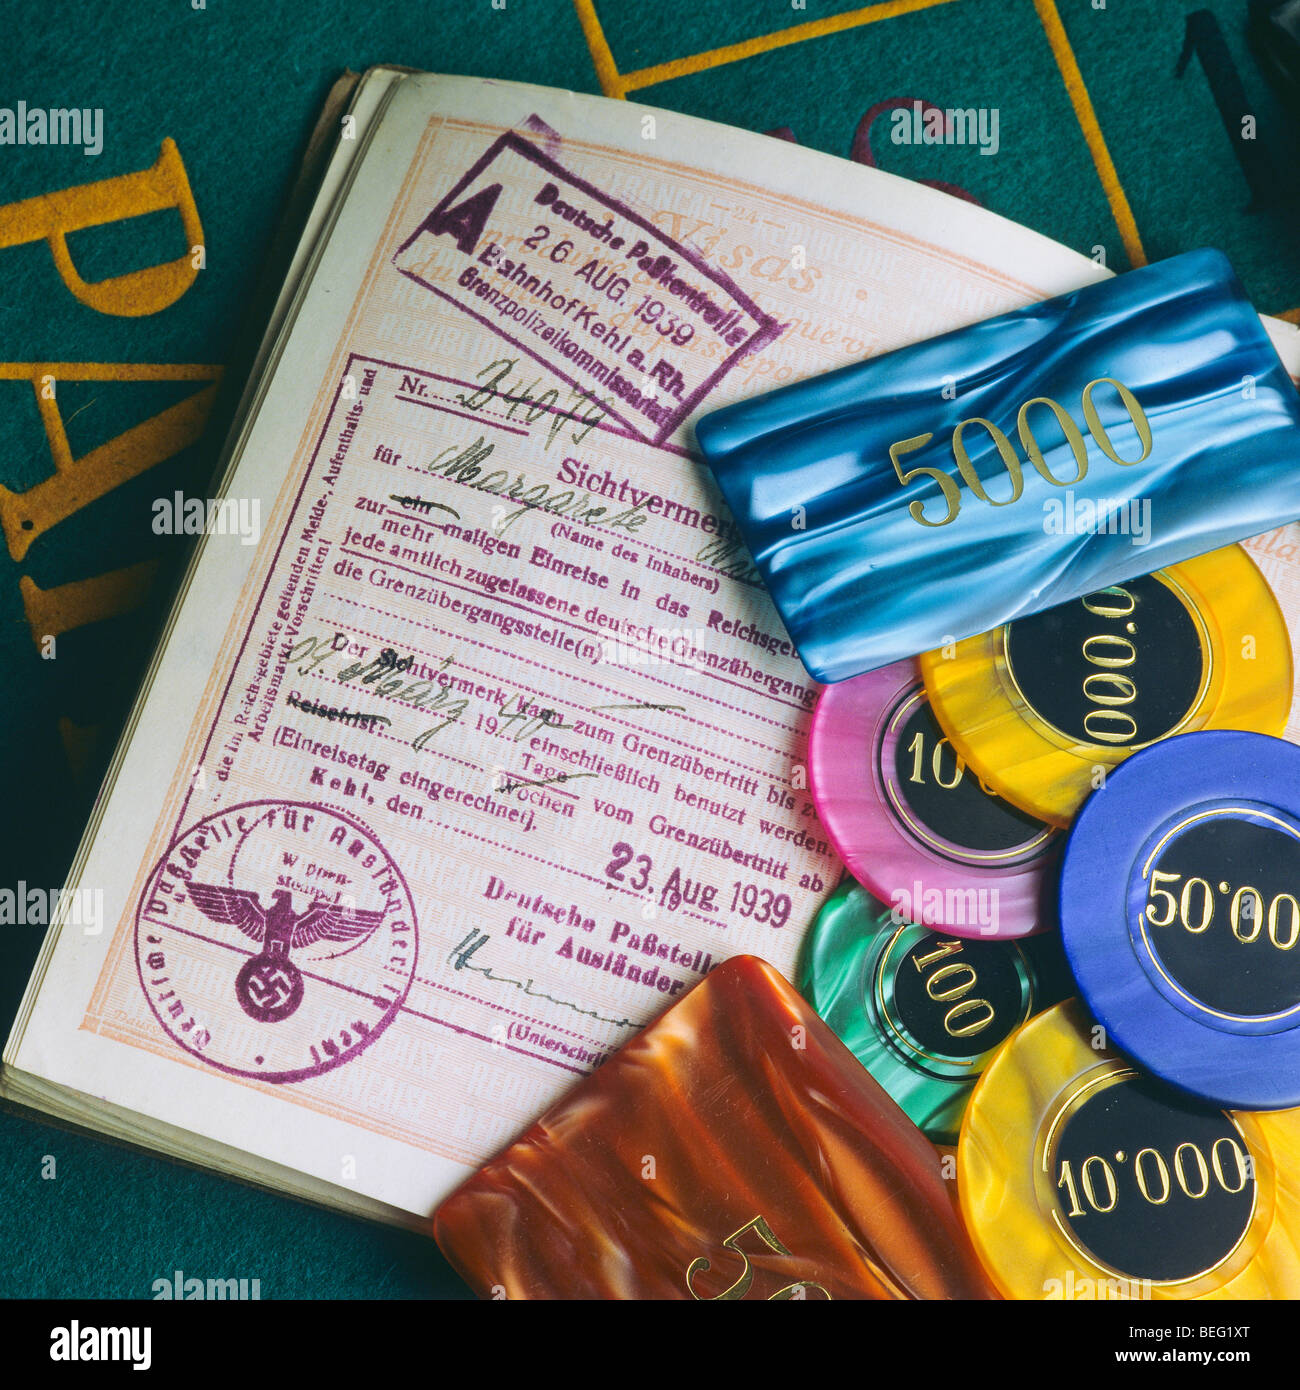 French gambling chips the rio hotel casino free show